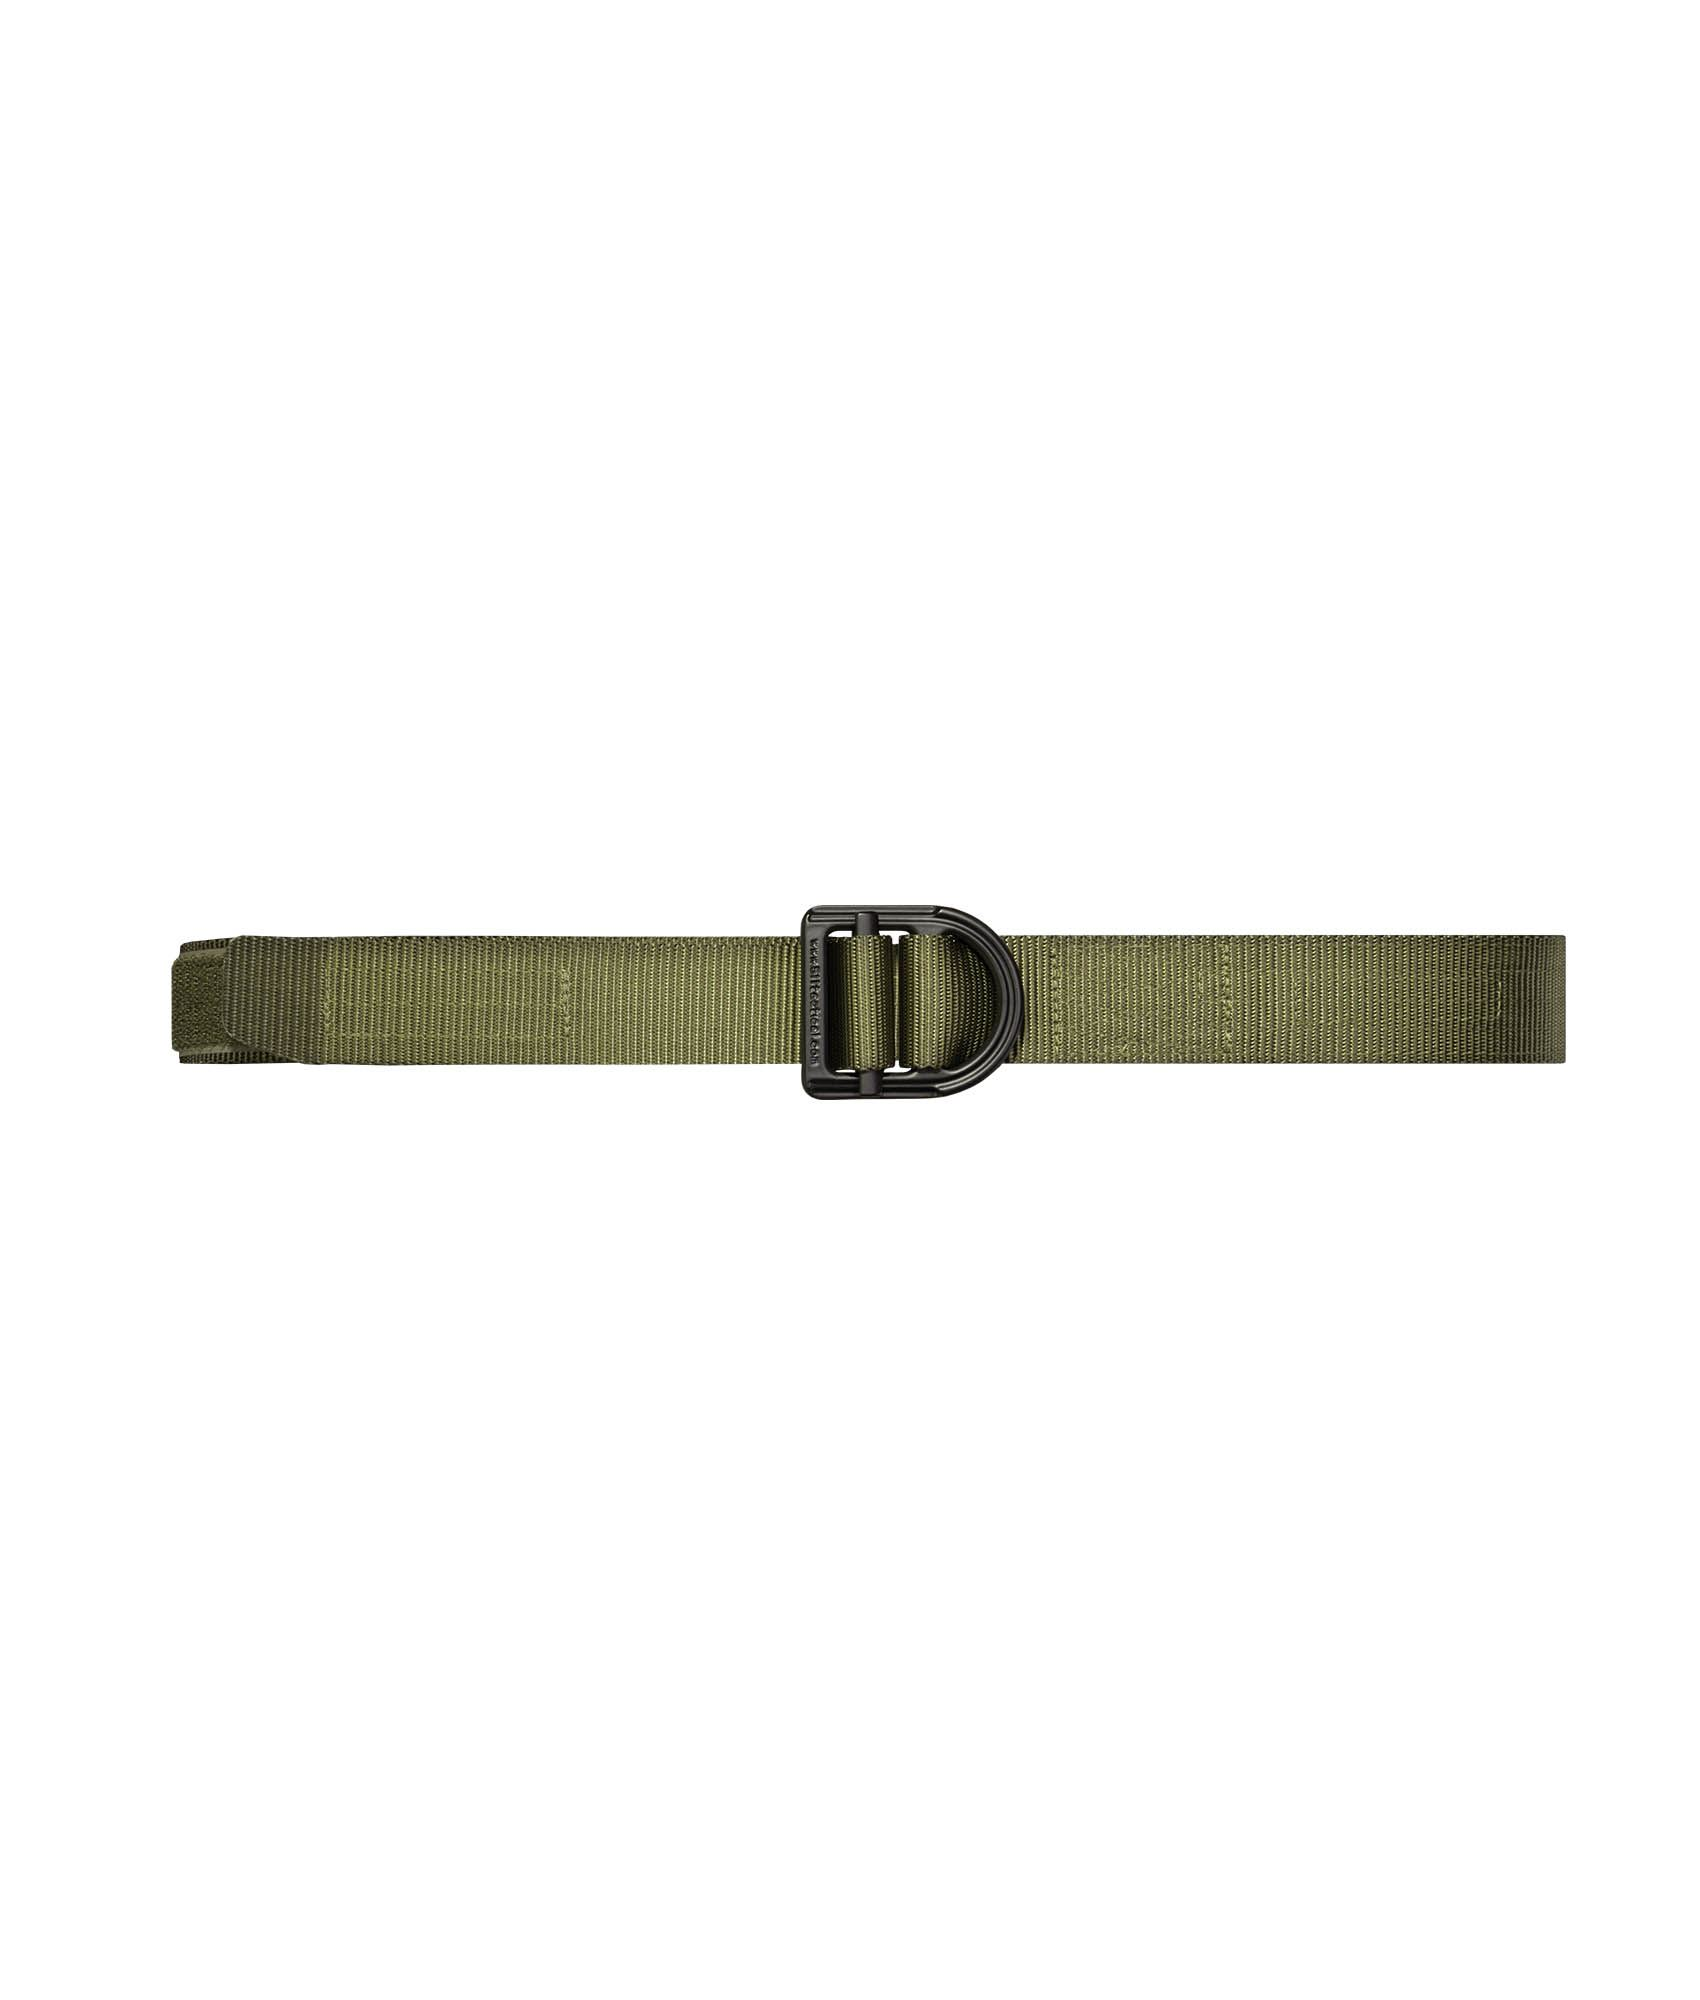 5.11 Tactical Trainer belt i TDU green